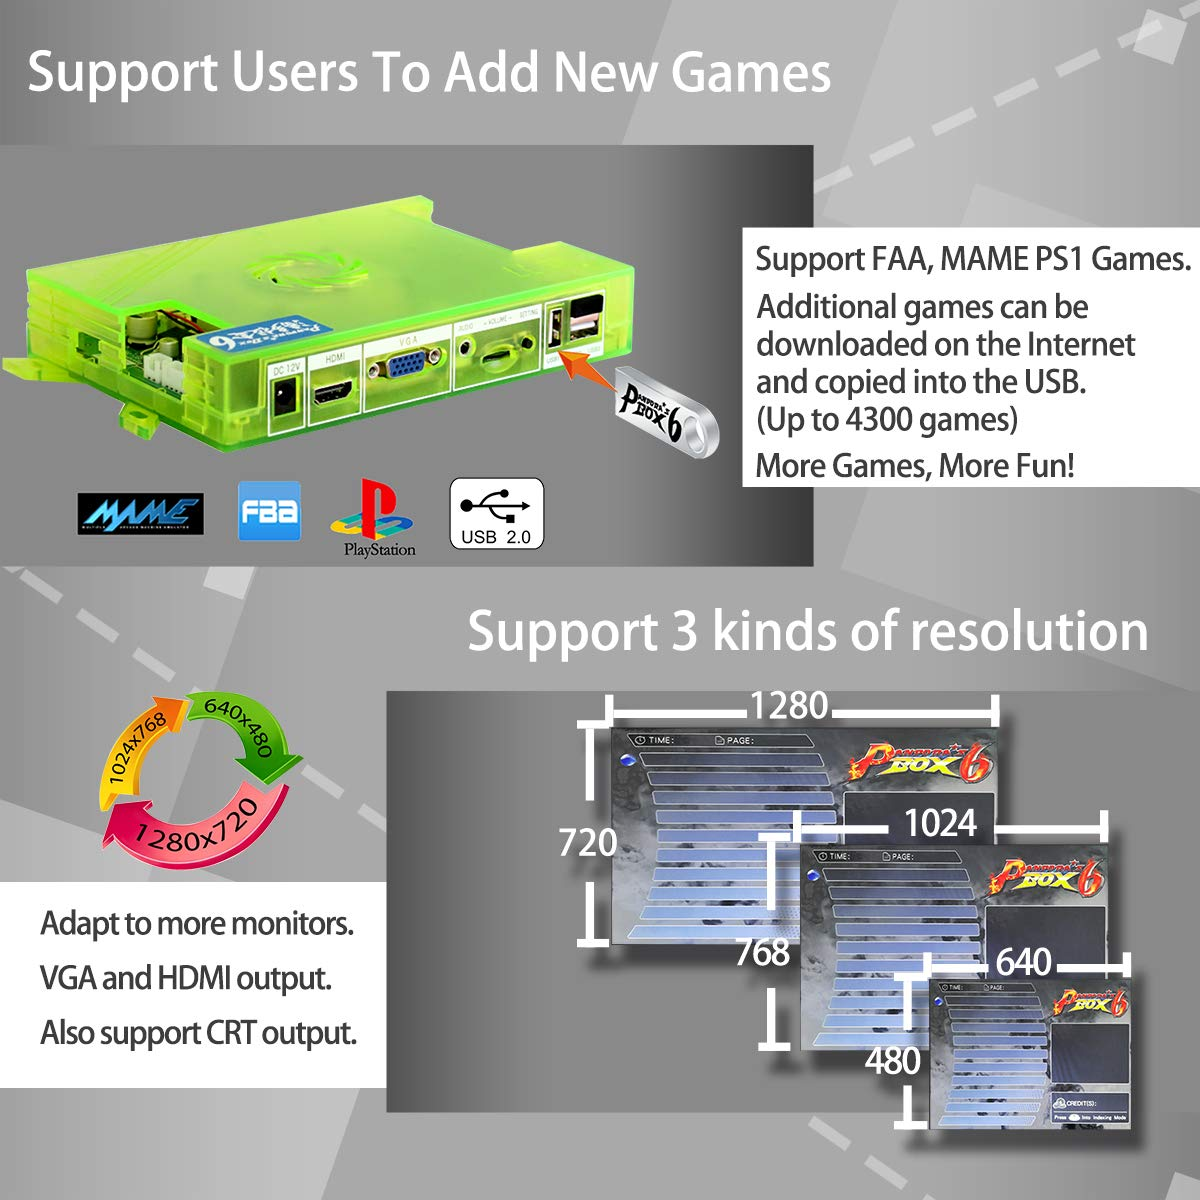 Wisamic Real Pandora's Box 6 Arcade Game Console - Add Additional Games, Support 3D Games, with Full HD, Games Classification, Upgraded CPU, Support PS3 PC TV 2 Players, No Games Included (6 Buttons) by Wisamic (Image #2)